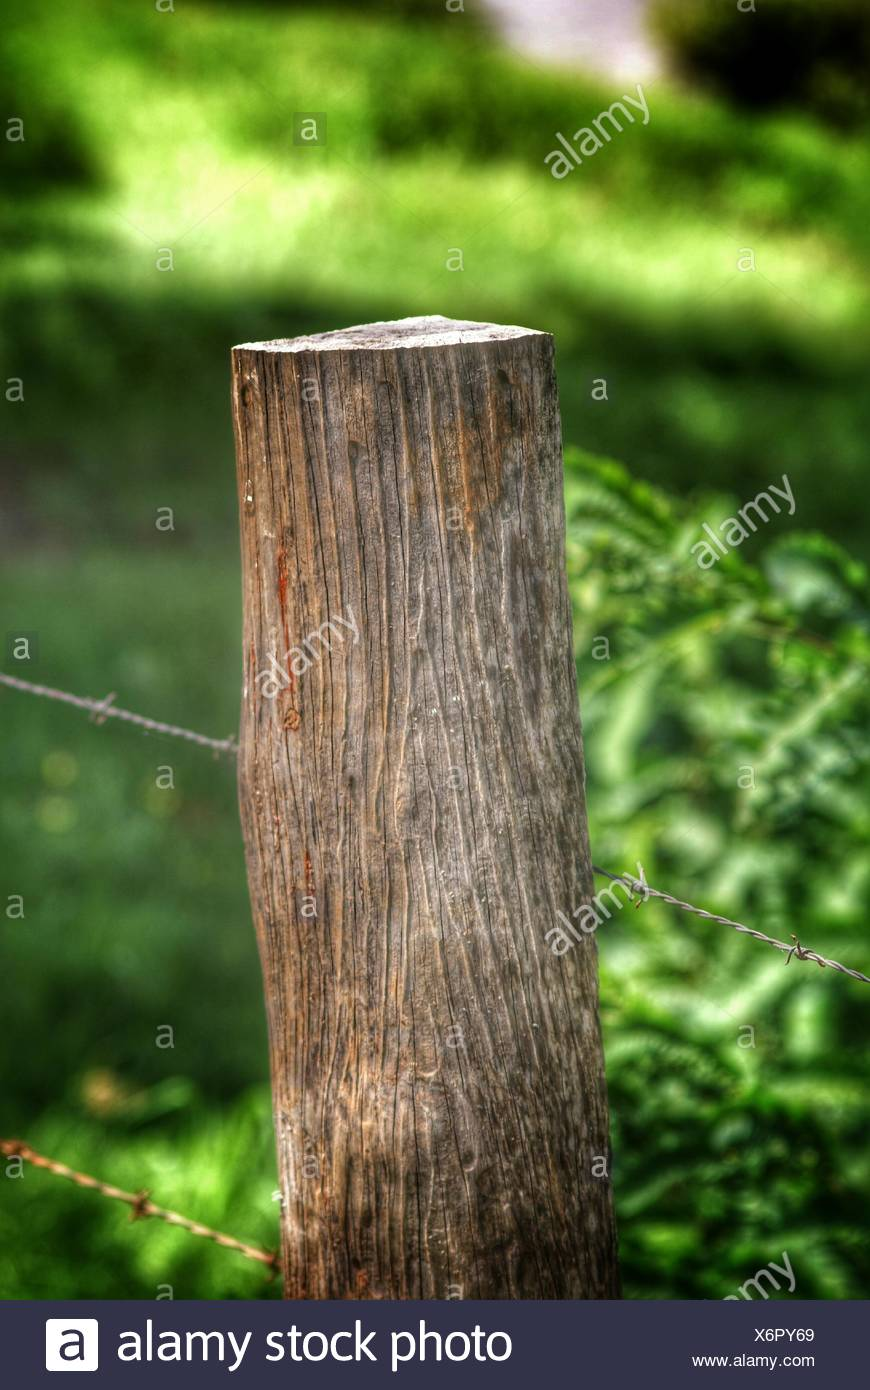 Close-Up Of Barbed Wire Fence On Wooden Post - Stock Image